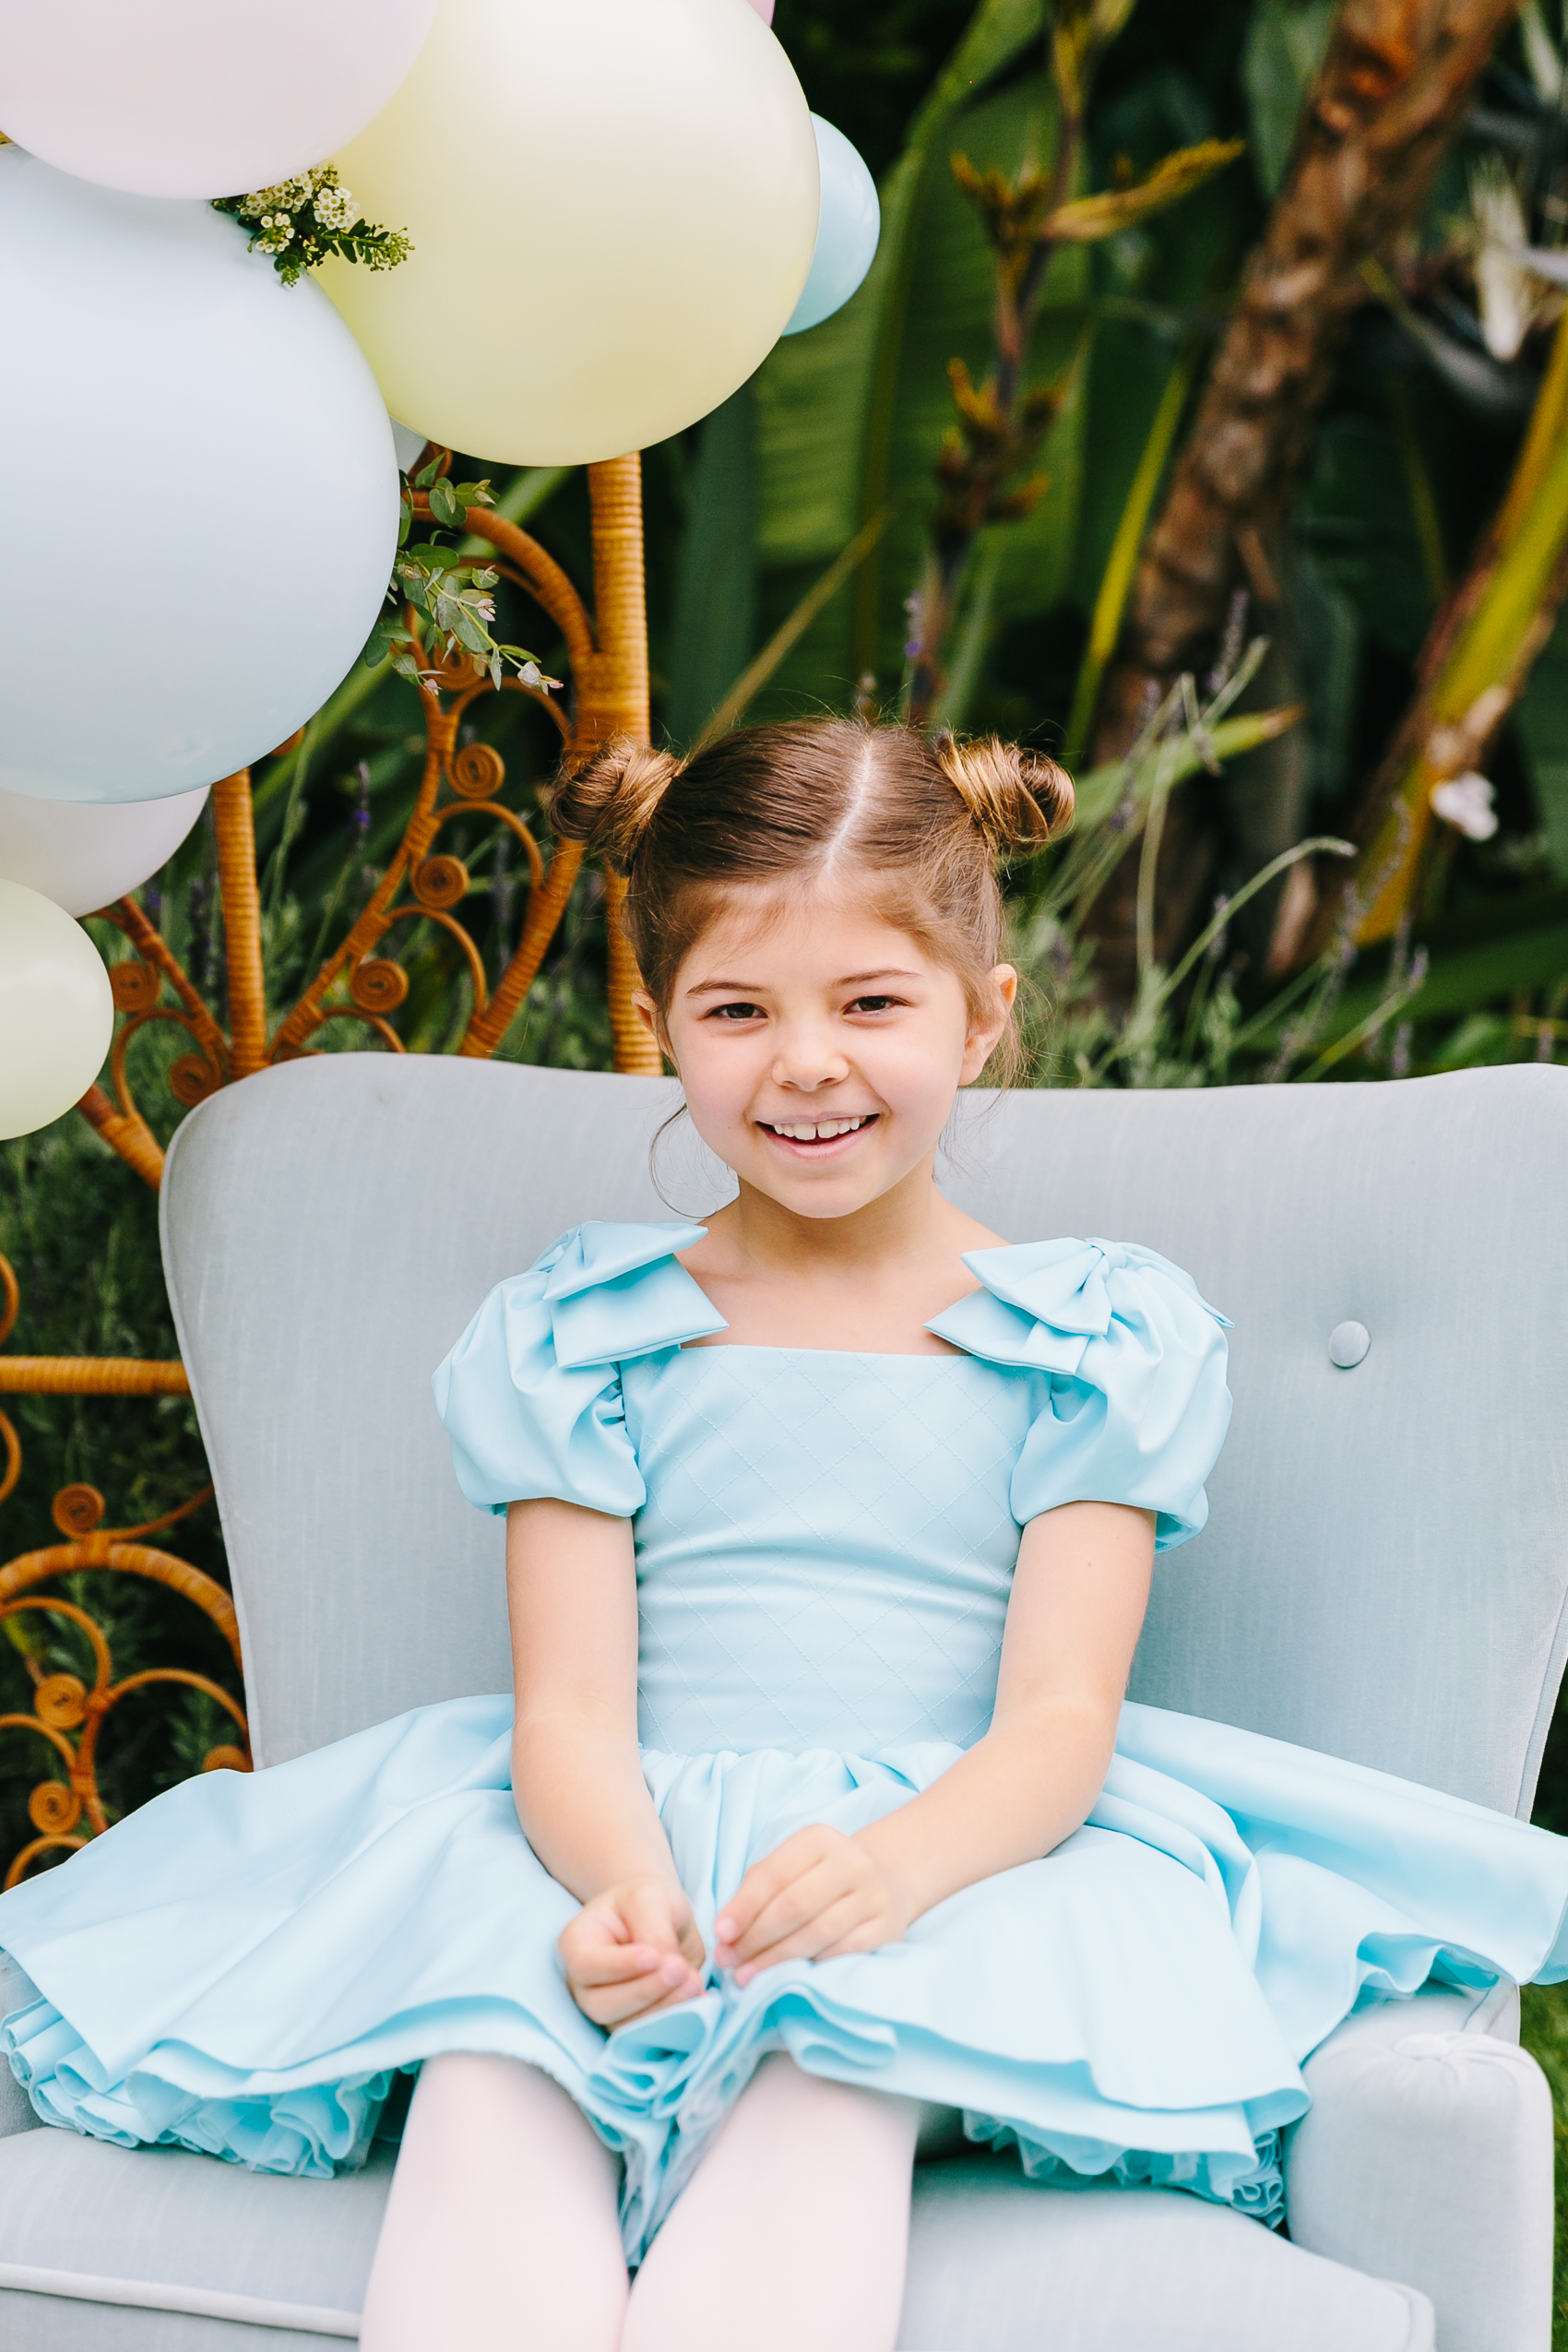 Los_Angeles_Family_Photographer_Luxury_Childrens_Party_Beverly_Hills_Unicorn_Birthday_Party-0105.jpg